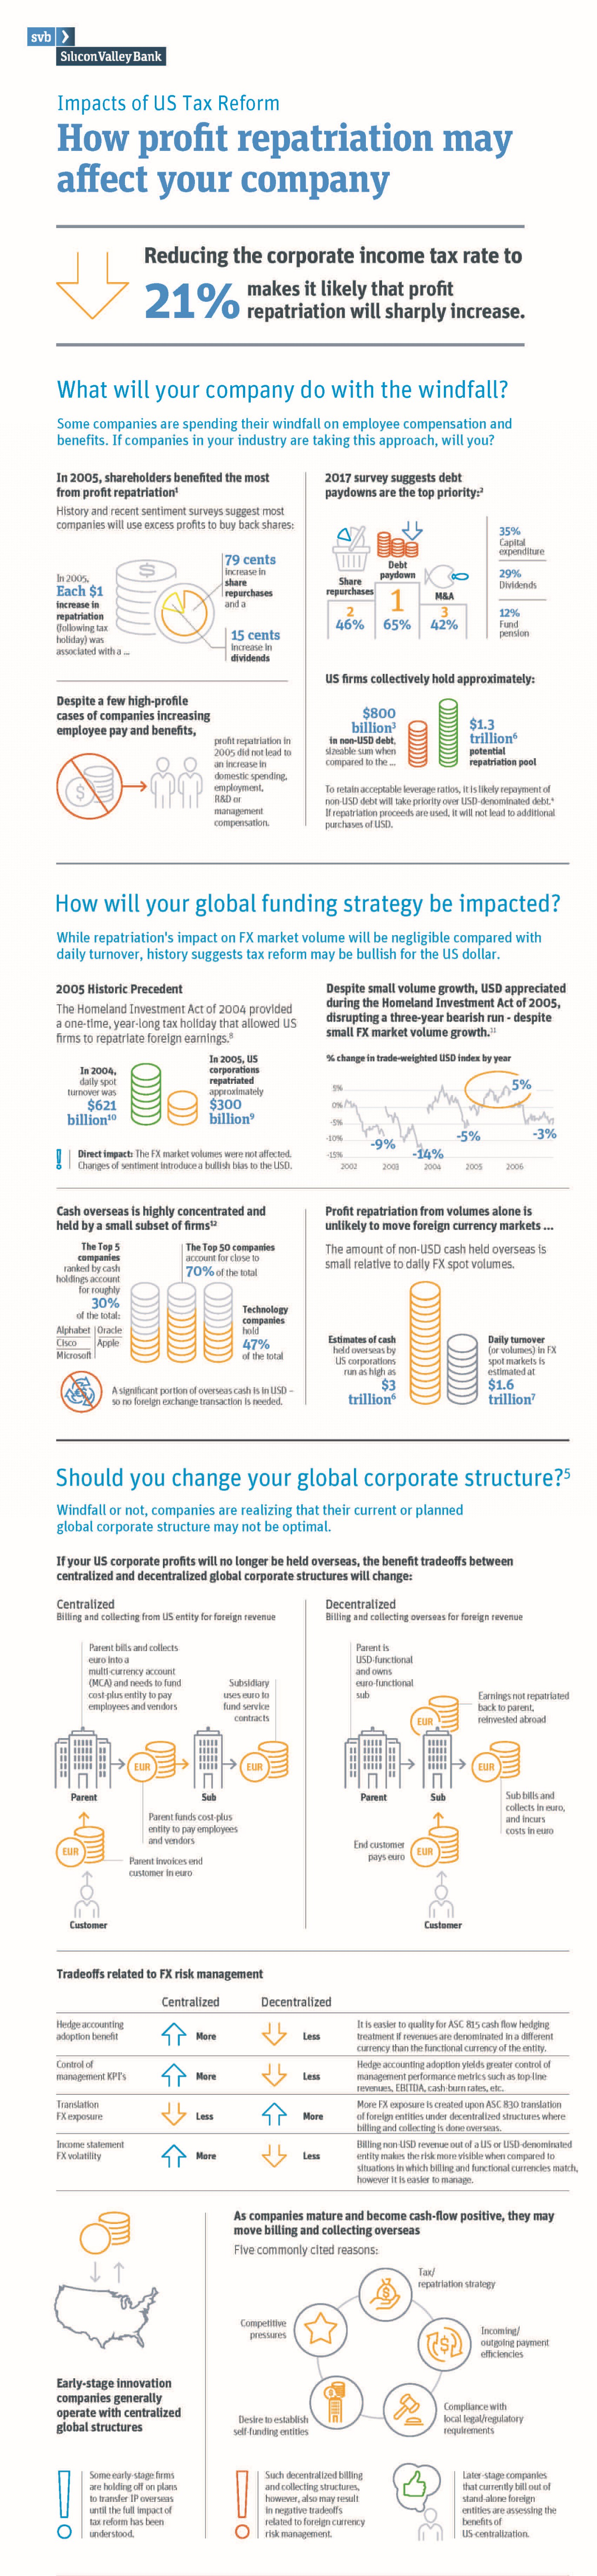 Impacts of US Tax Reform Infographic